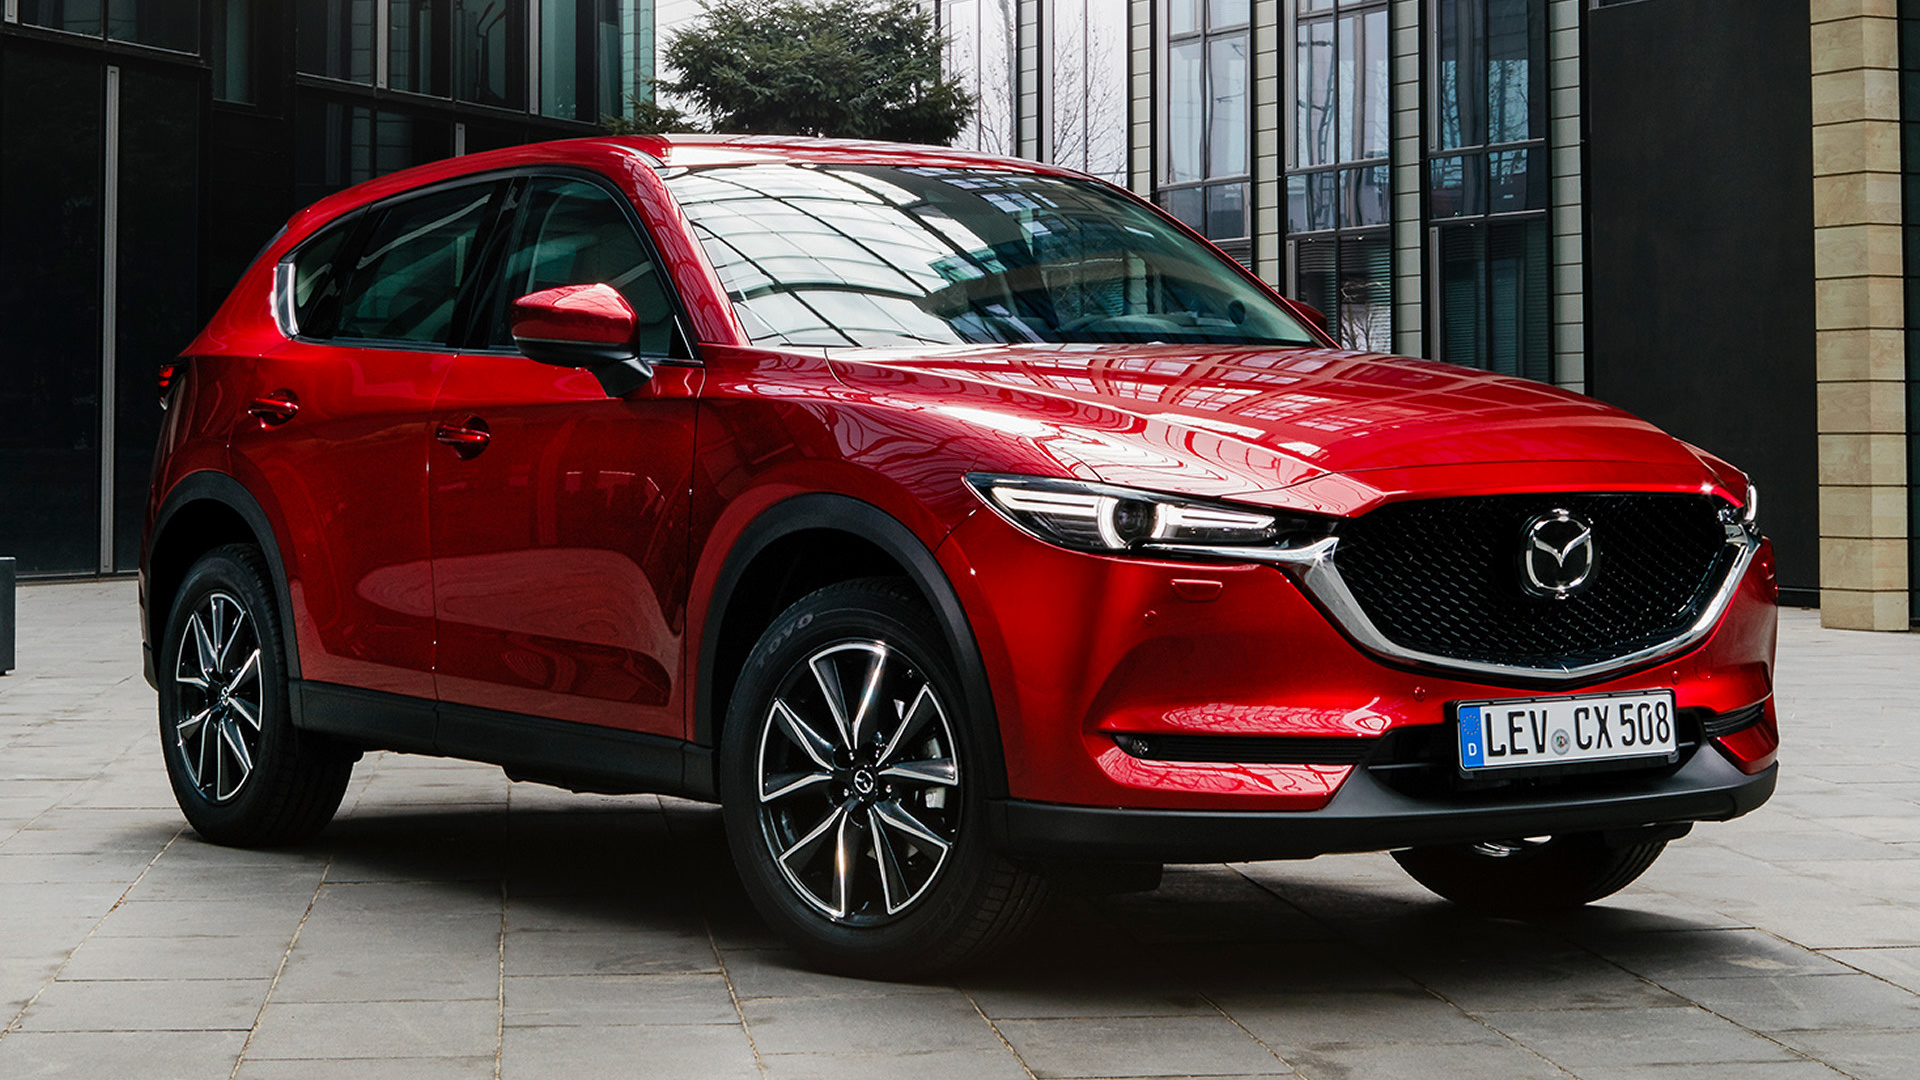 1920x1080 - Mazda CX-5 Wallpapers 27